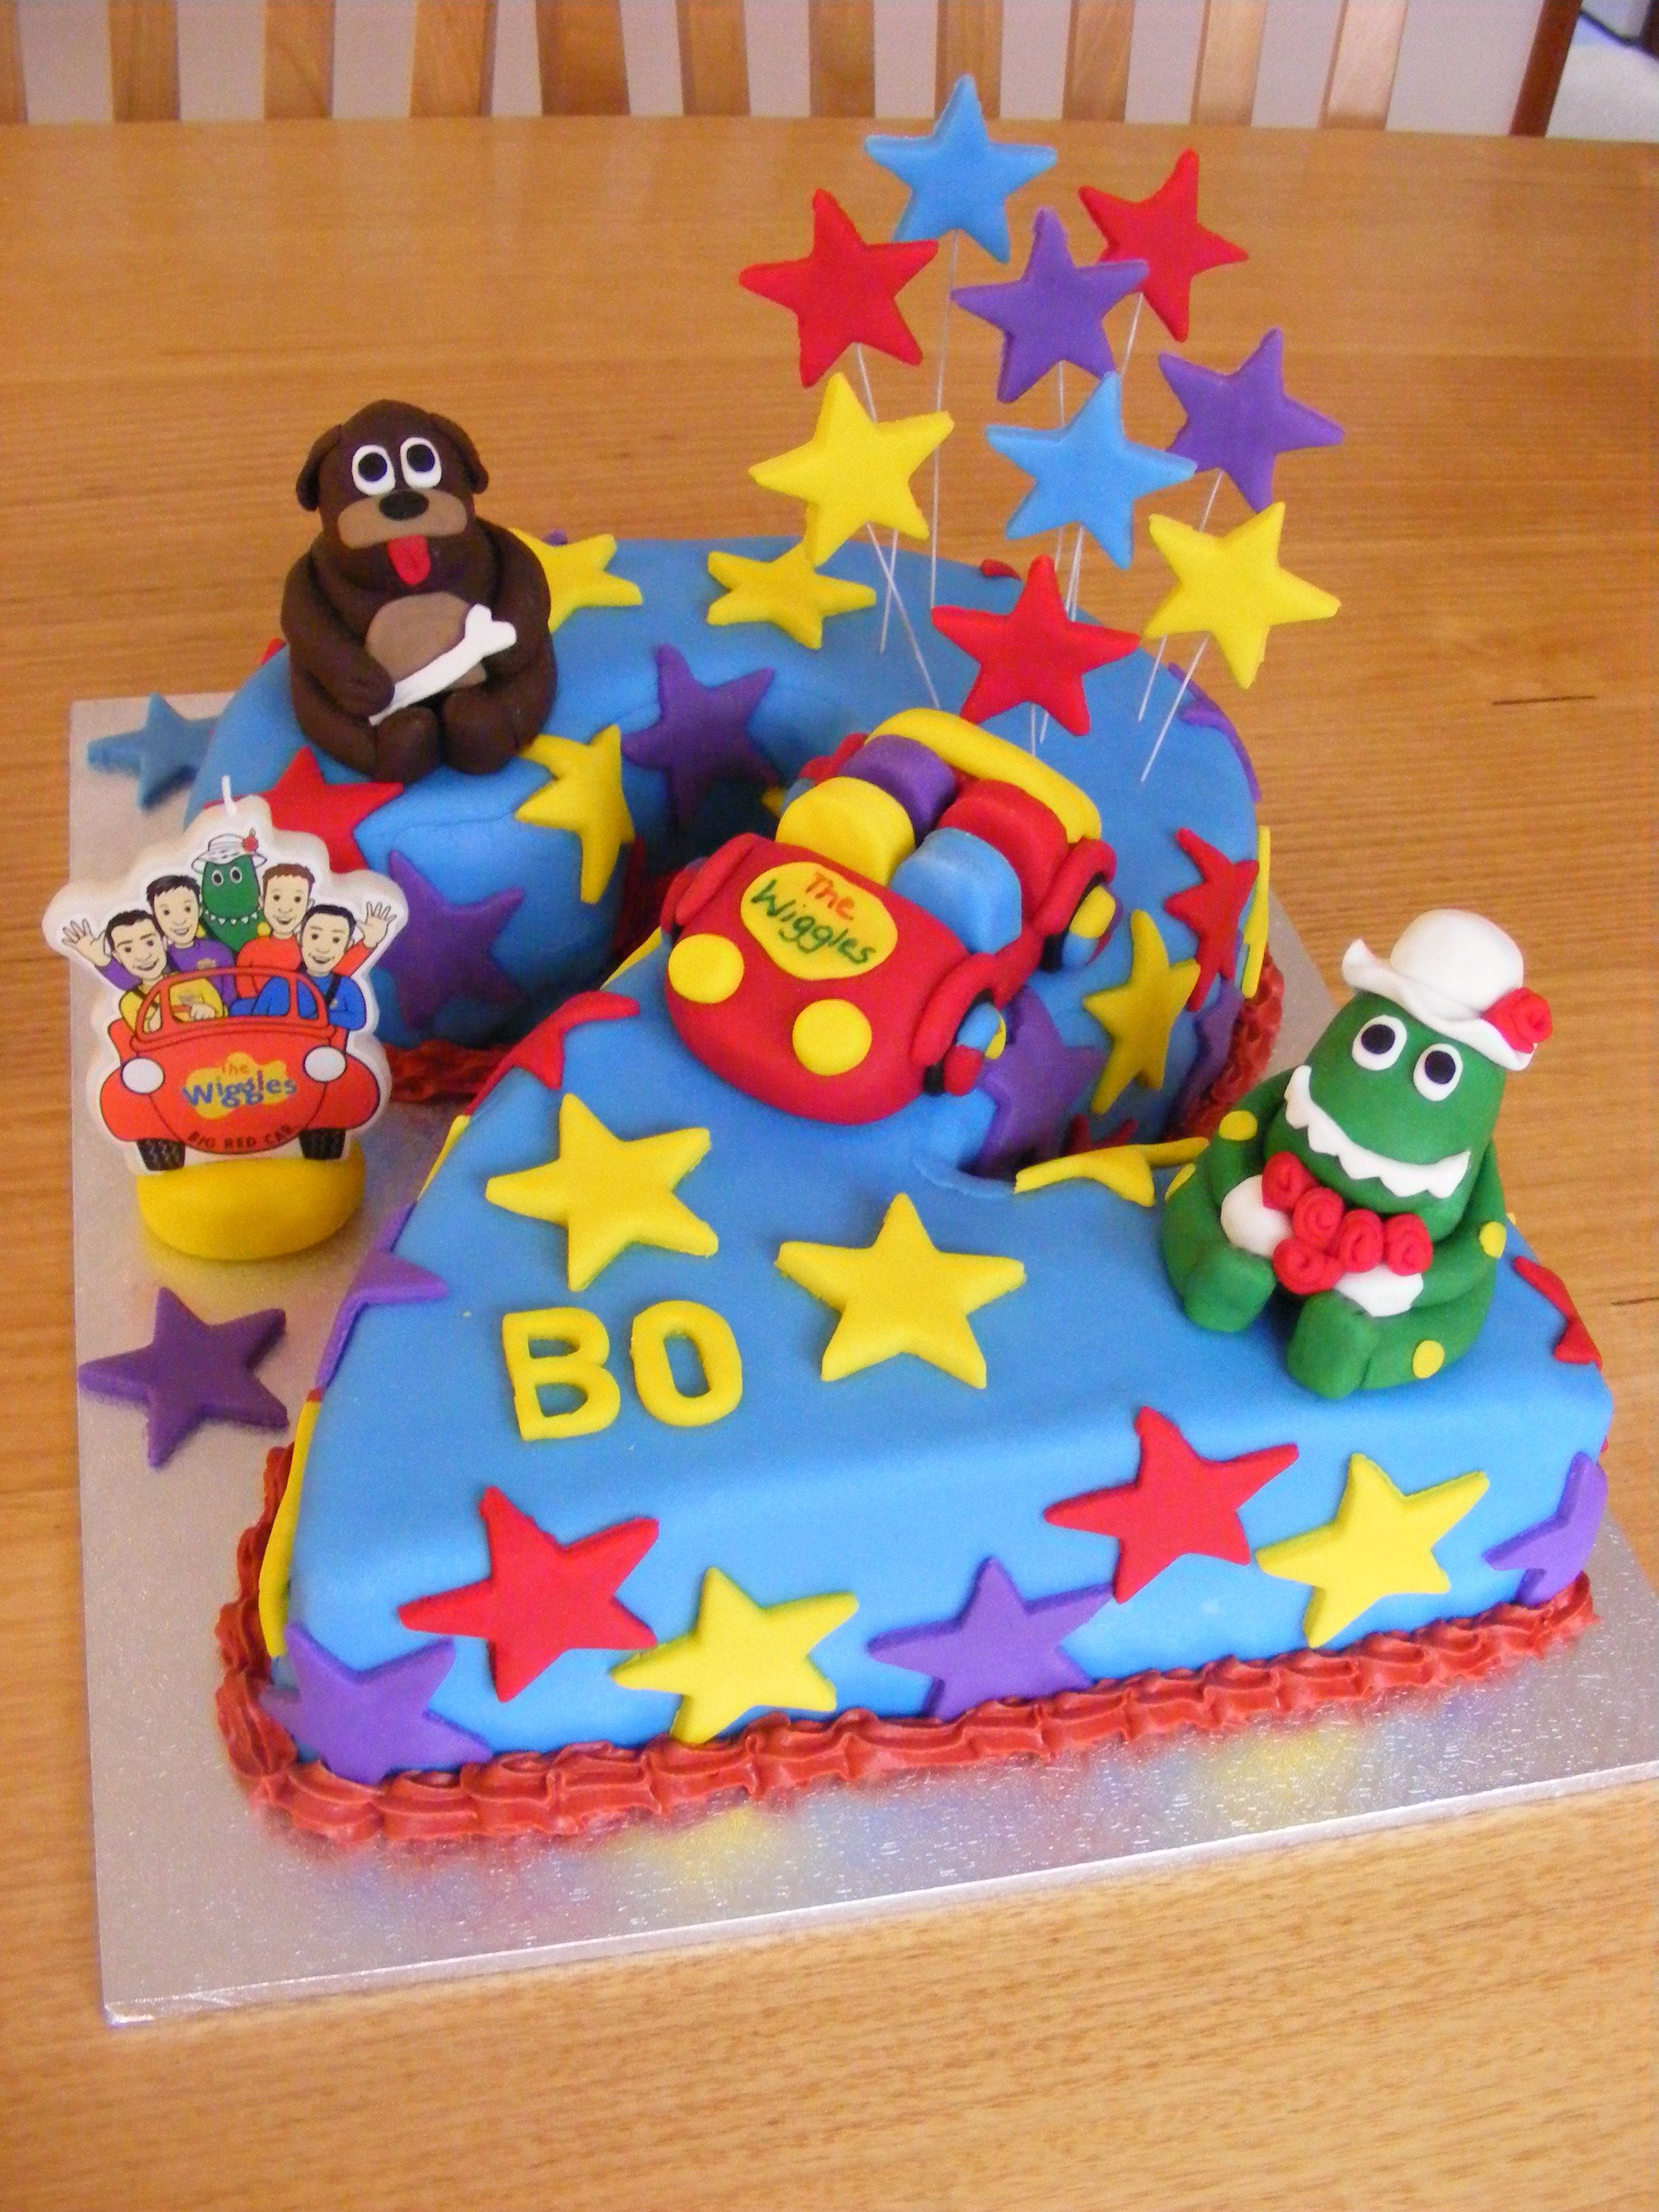 Wiggles Cake I Made For My Nephew With Images Wiggles